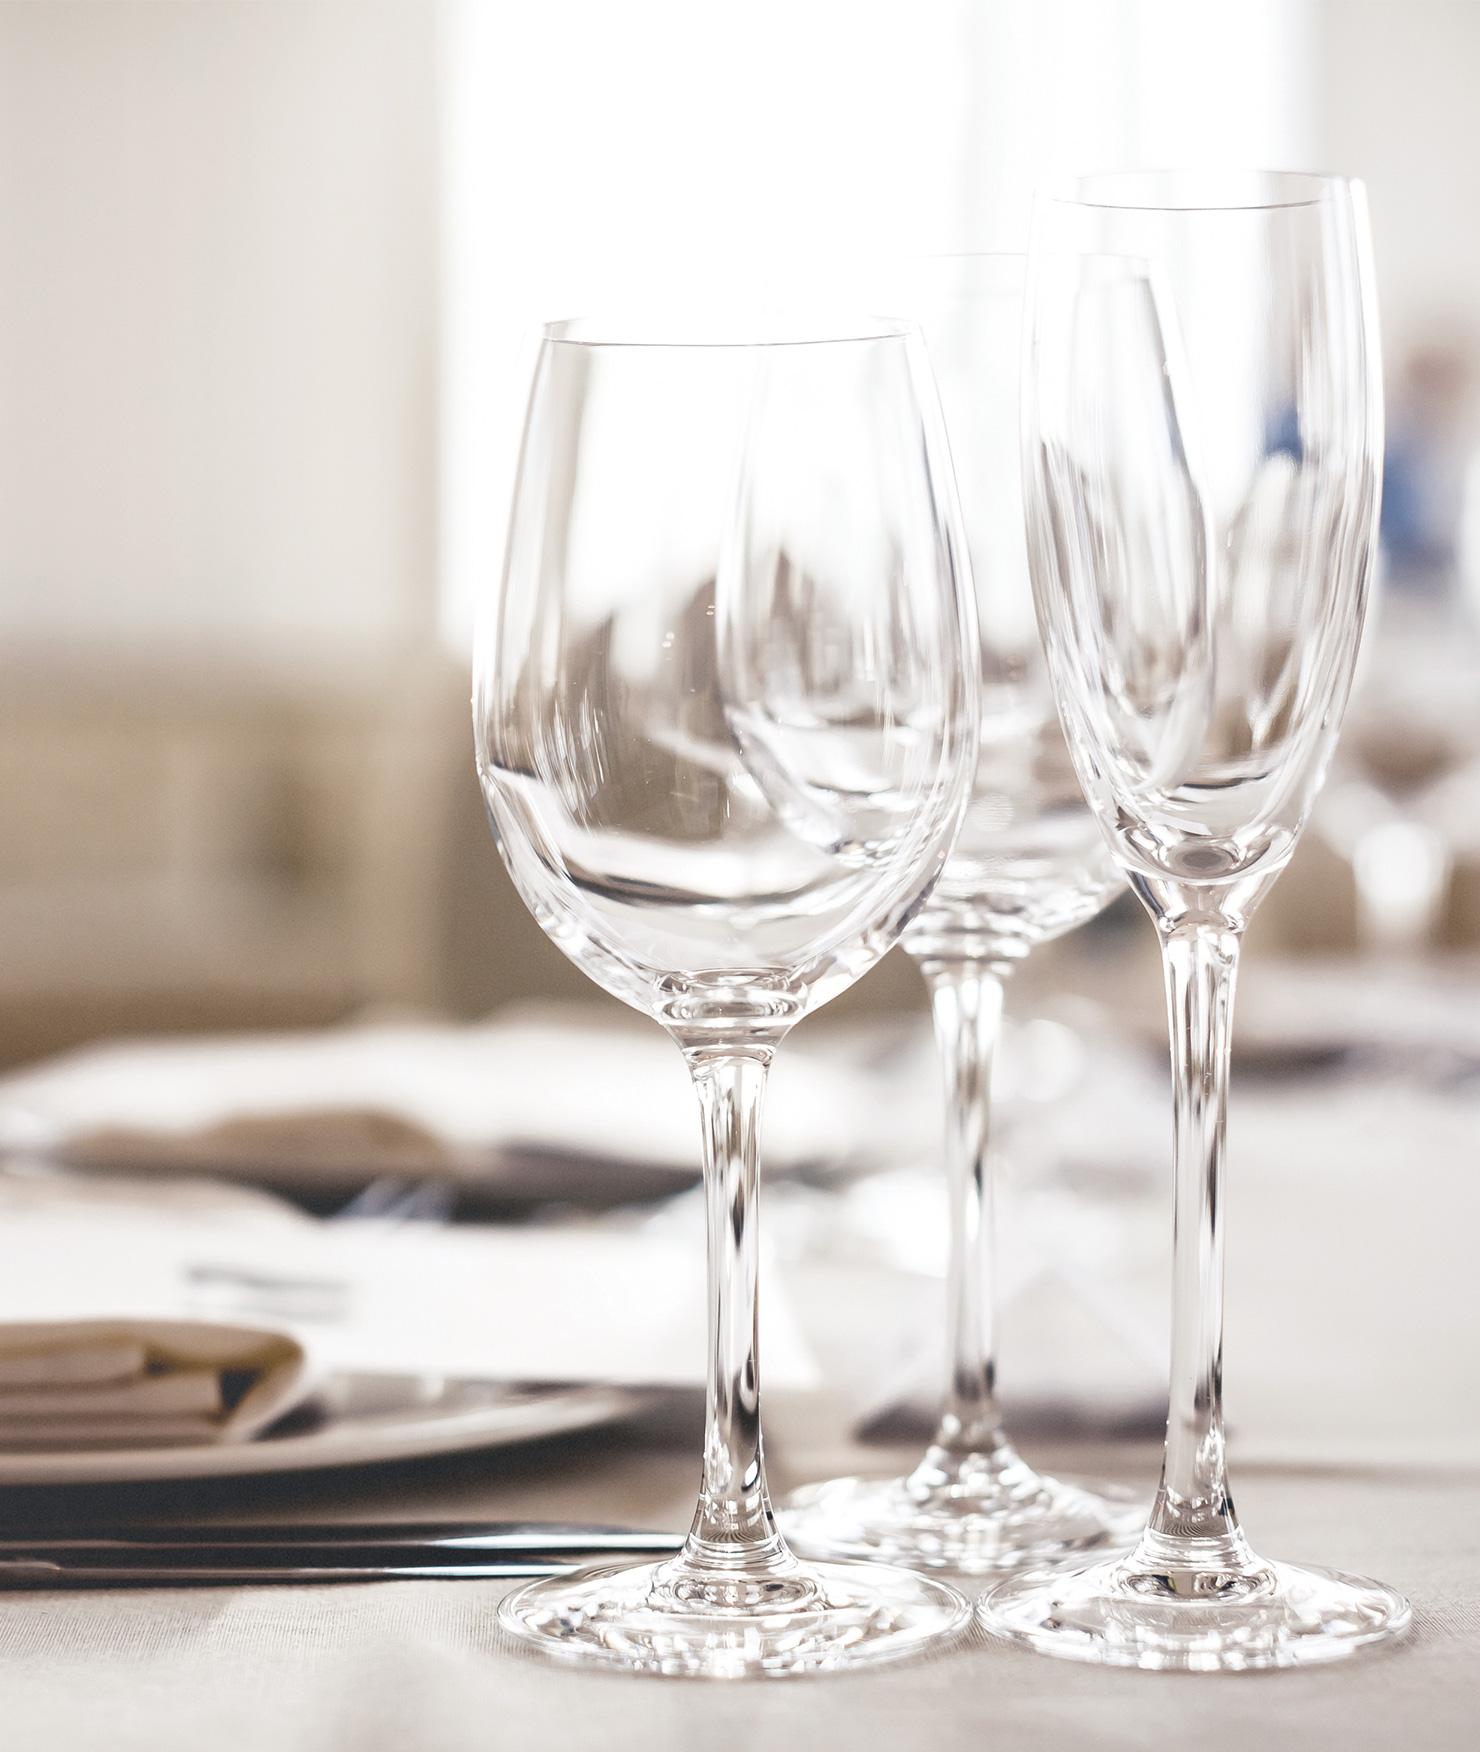 BRITA filter PURITY Clean fine dining glasses